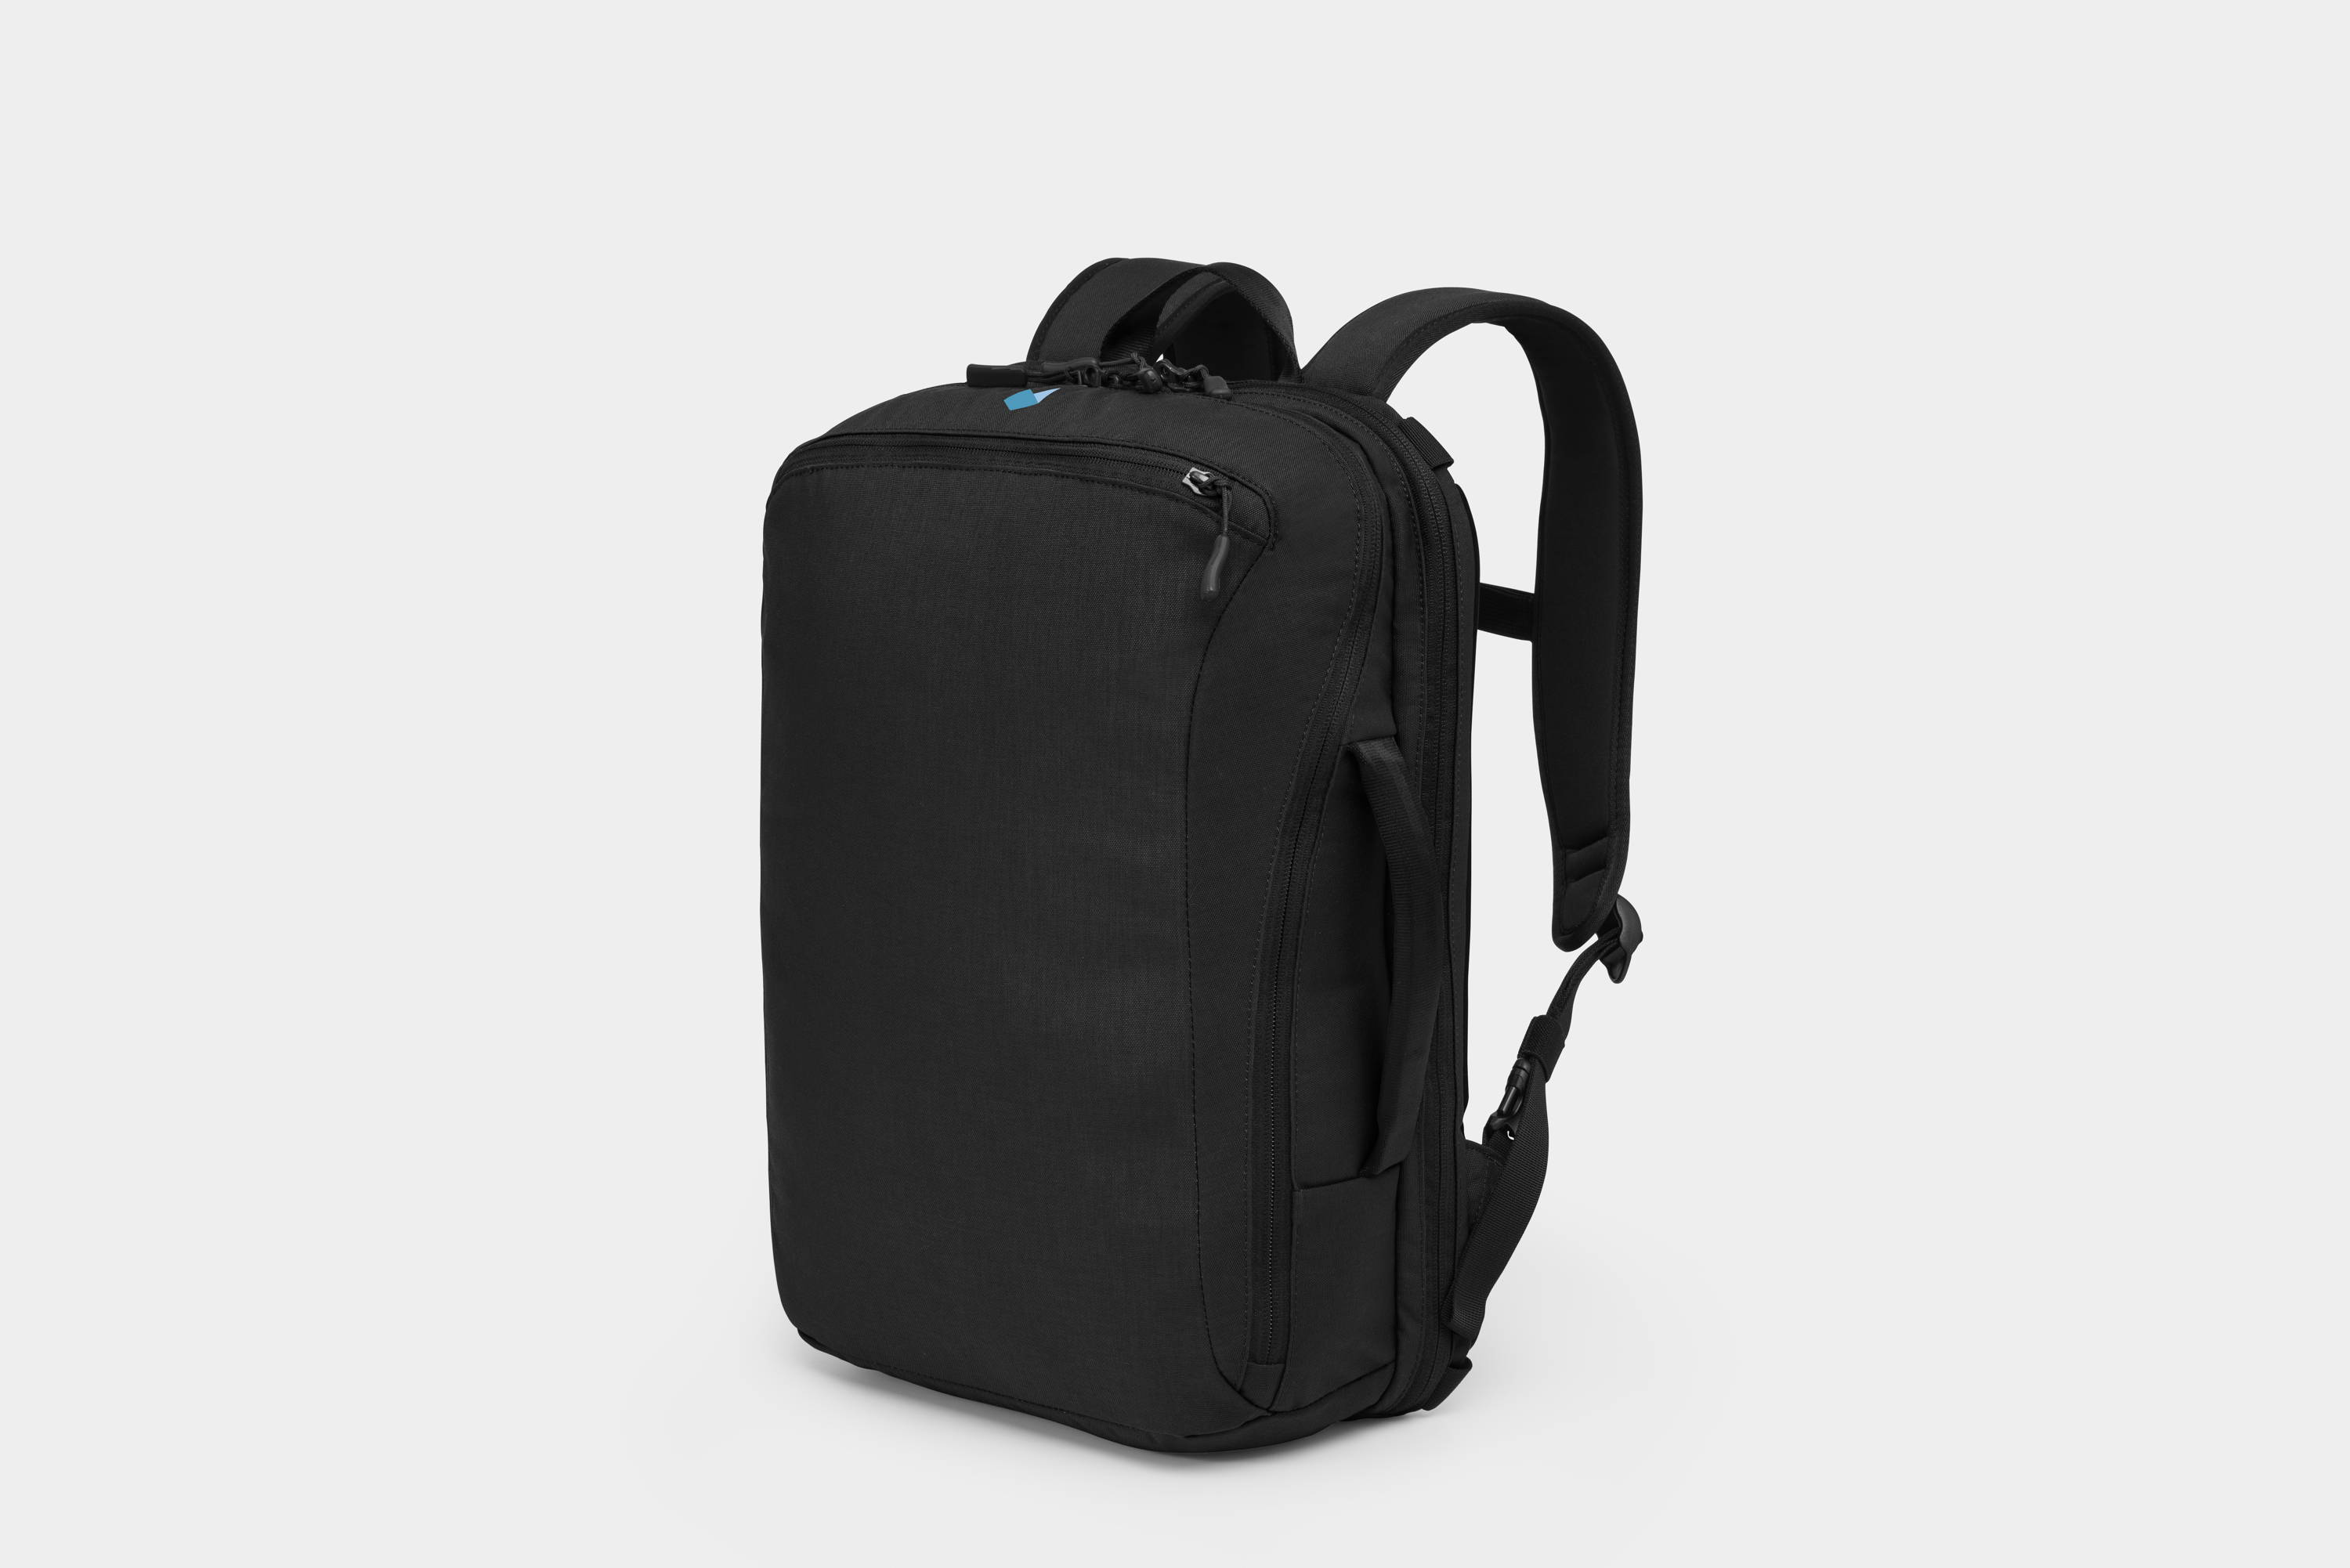 Minaal Daily Bag - The best laptop backpack.